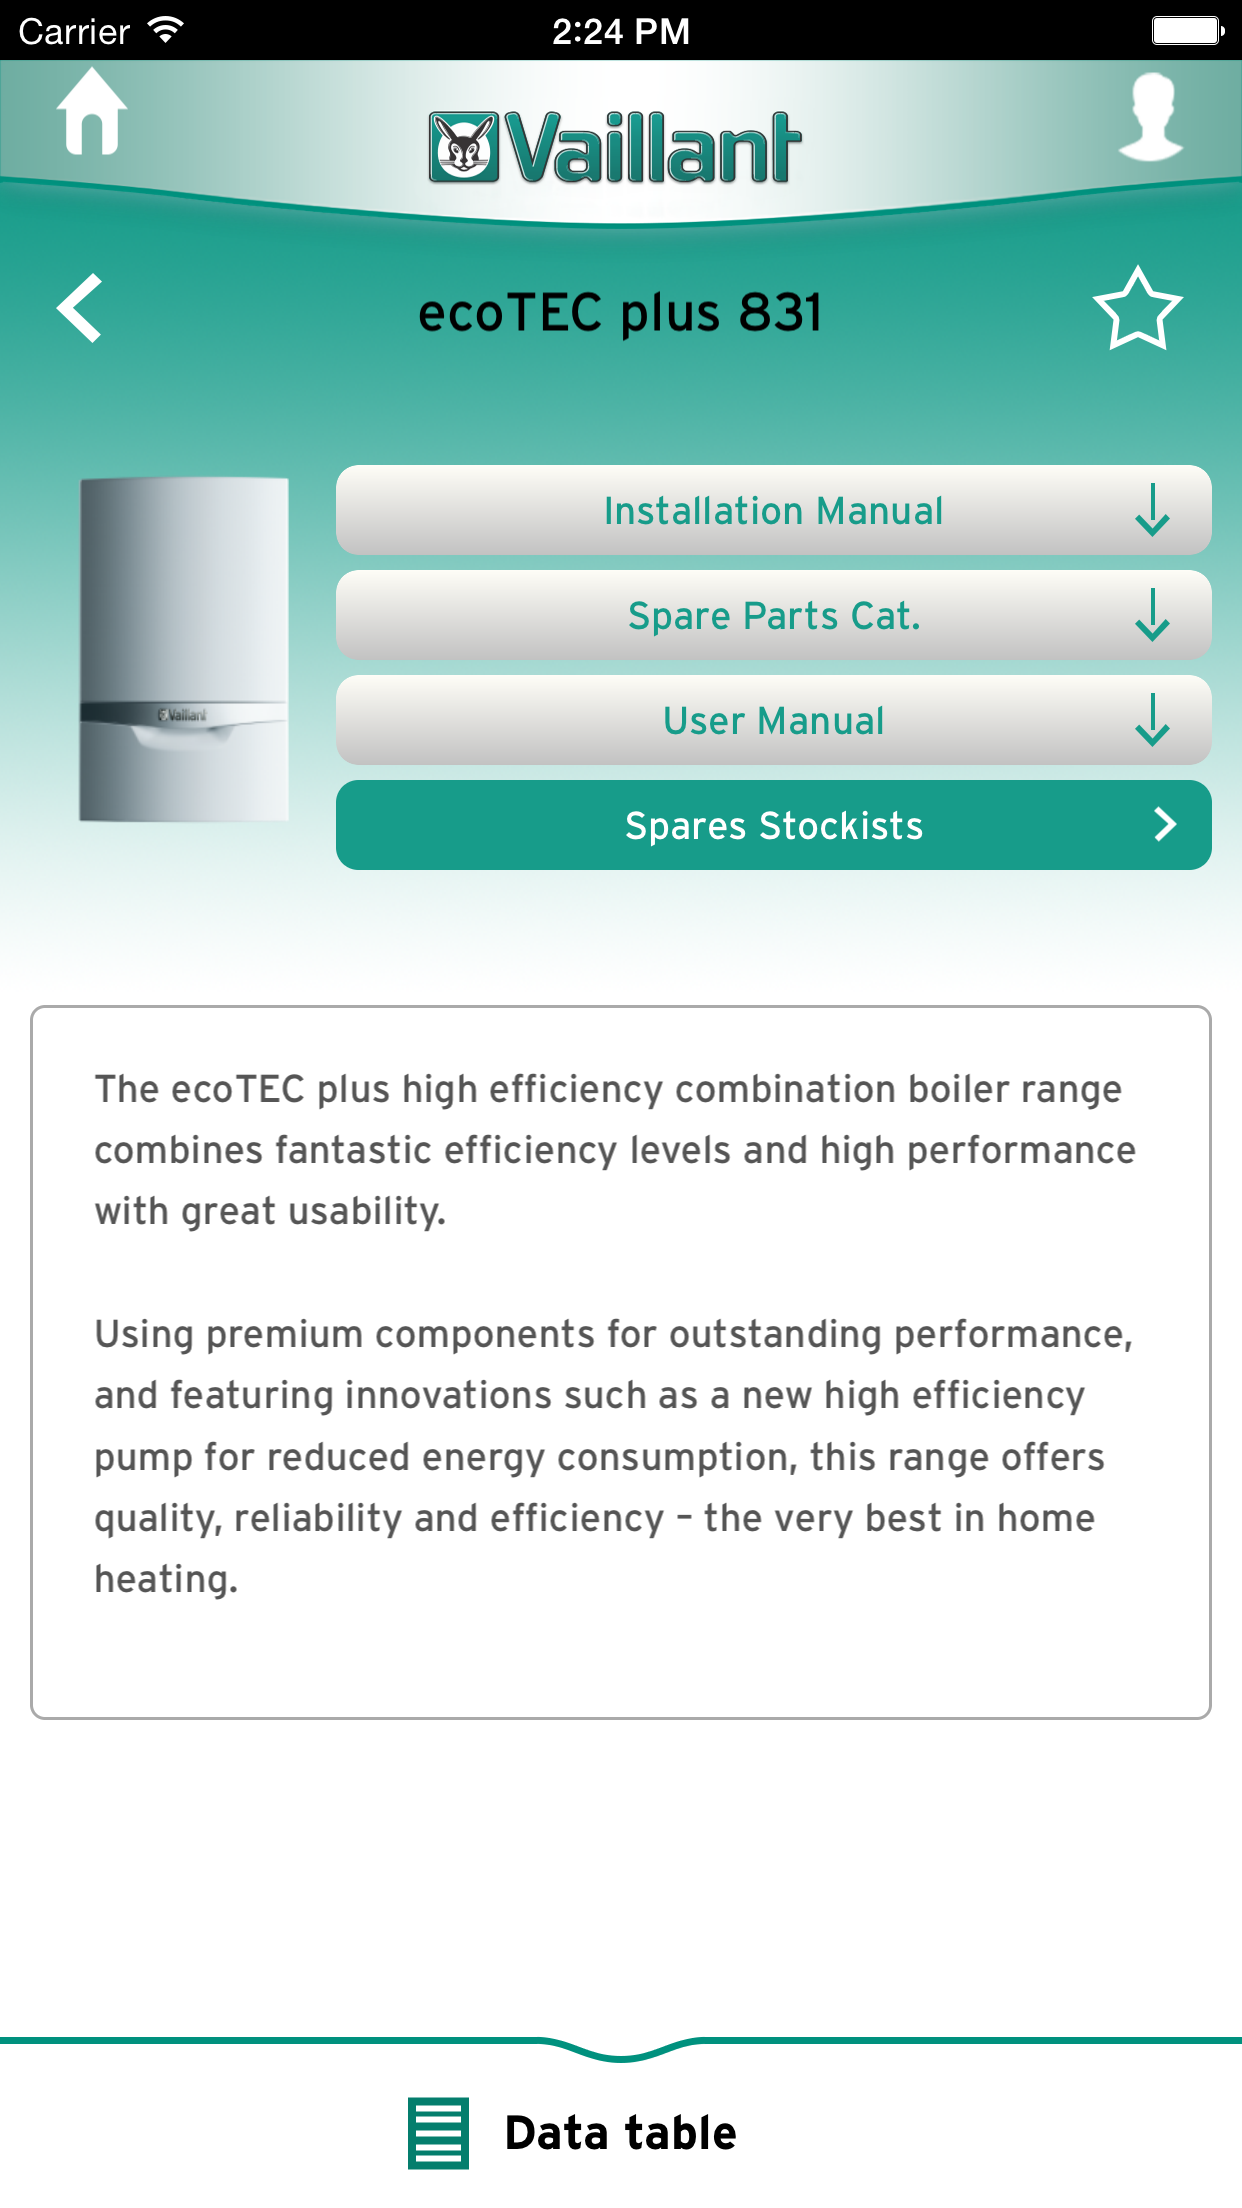 Vaillant masterTEC app now available on Android - Installer ...